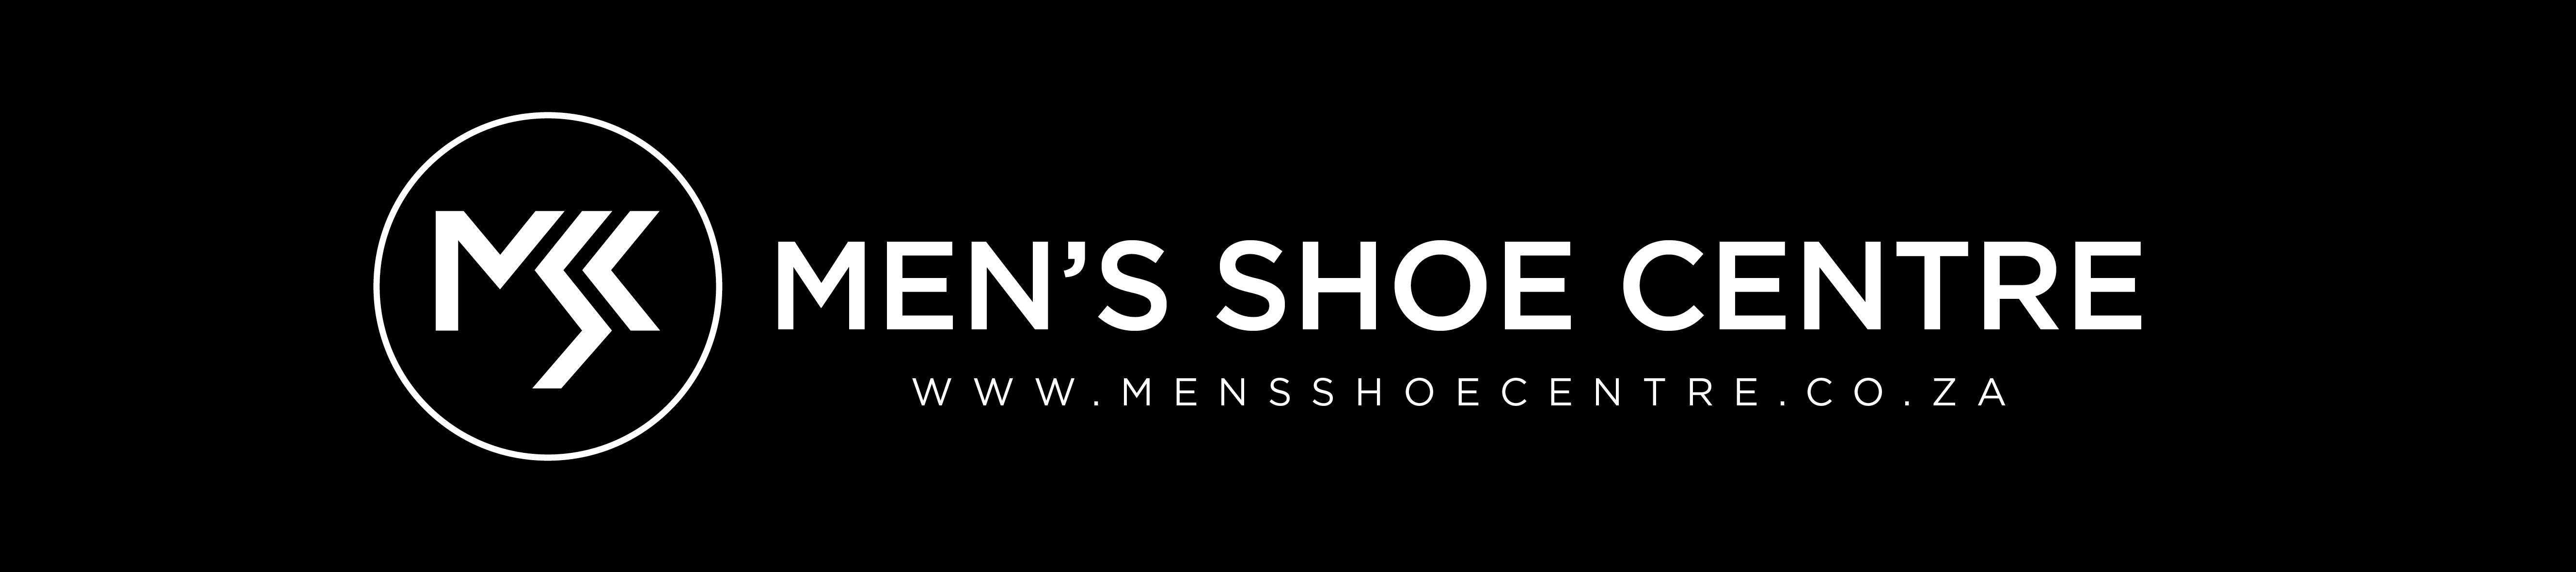 Read Men\'s Shoe Centre Reviews